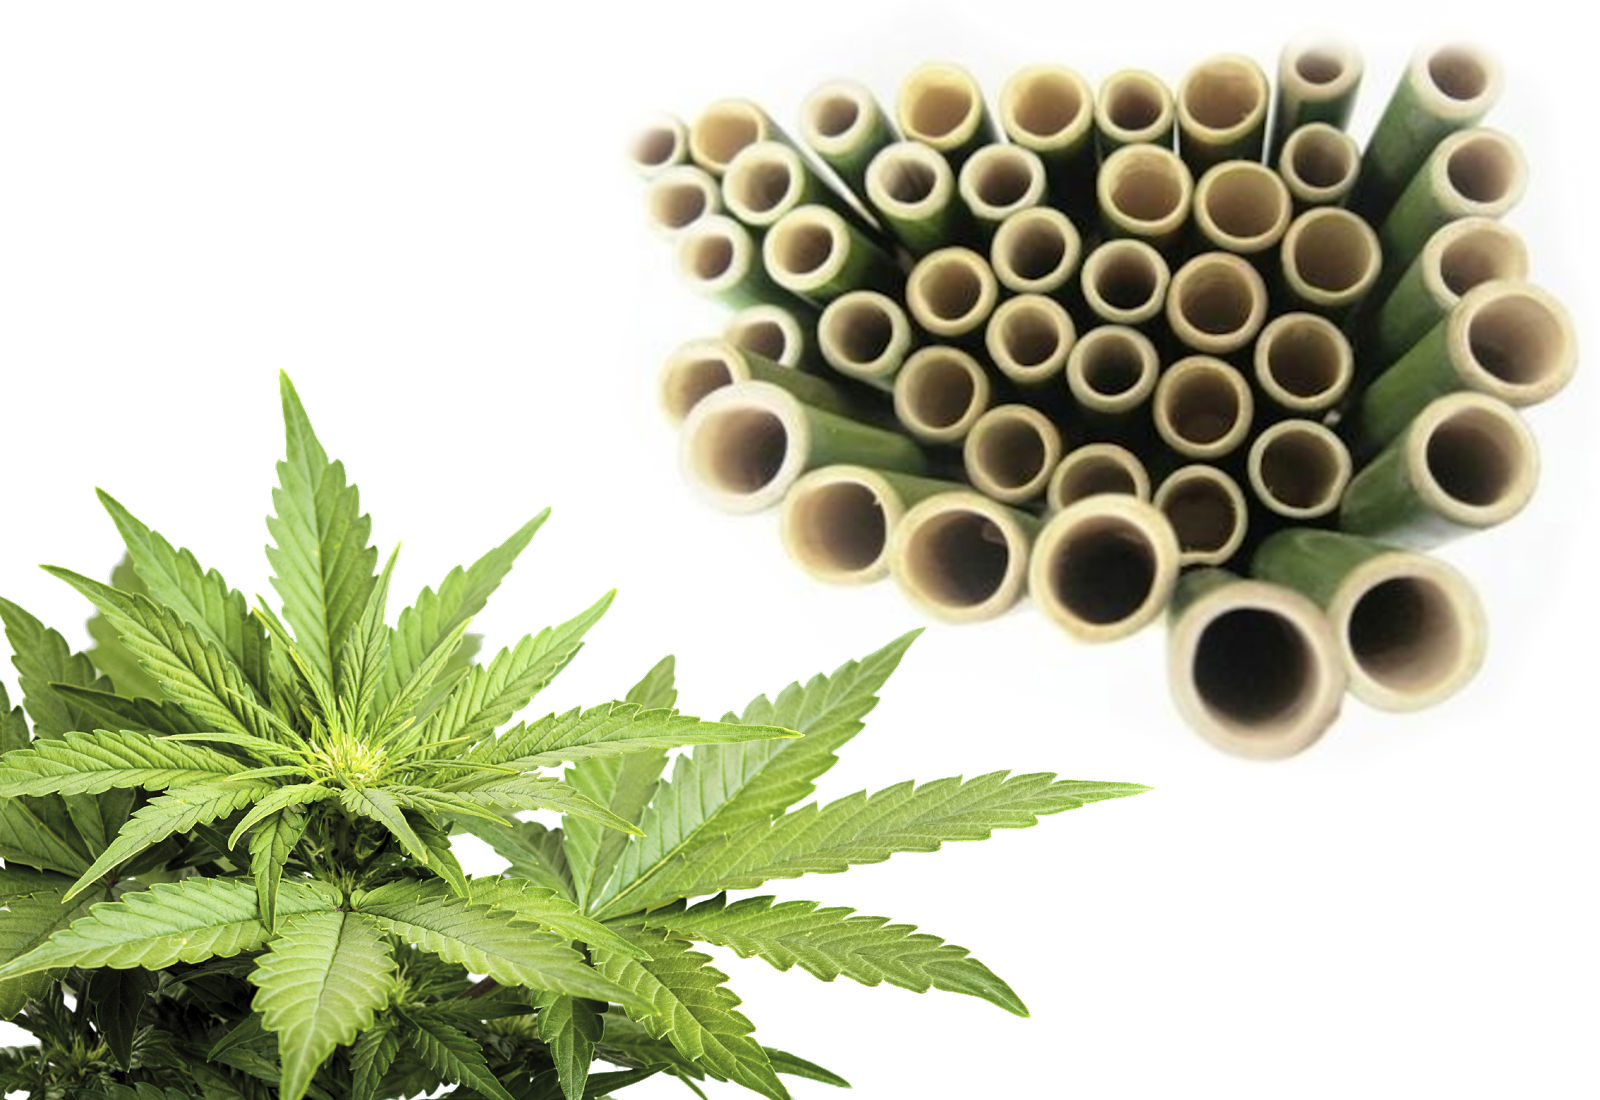 THE SOLUTION - Hemp replaces oil. Bamboo replaces coal.